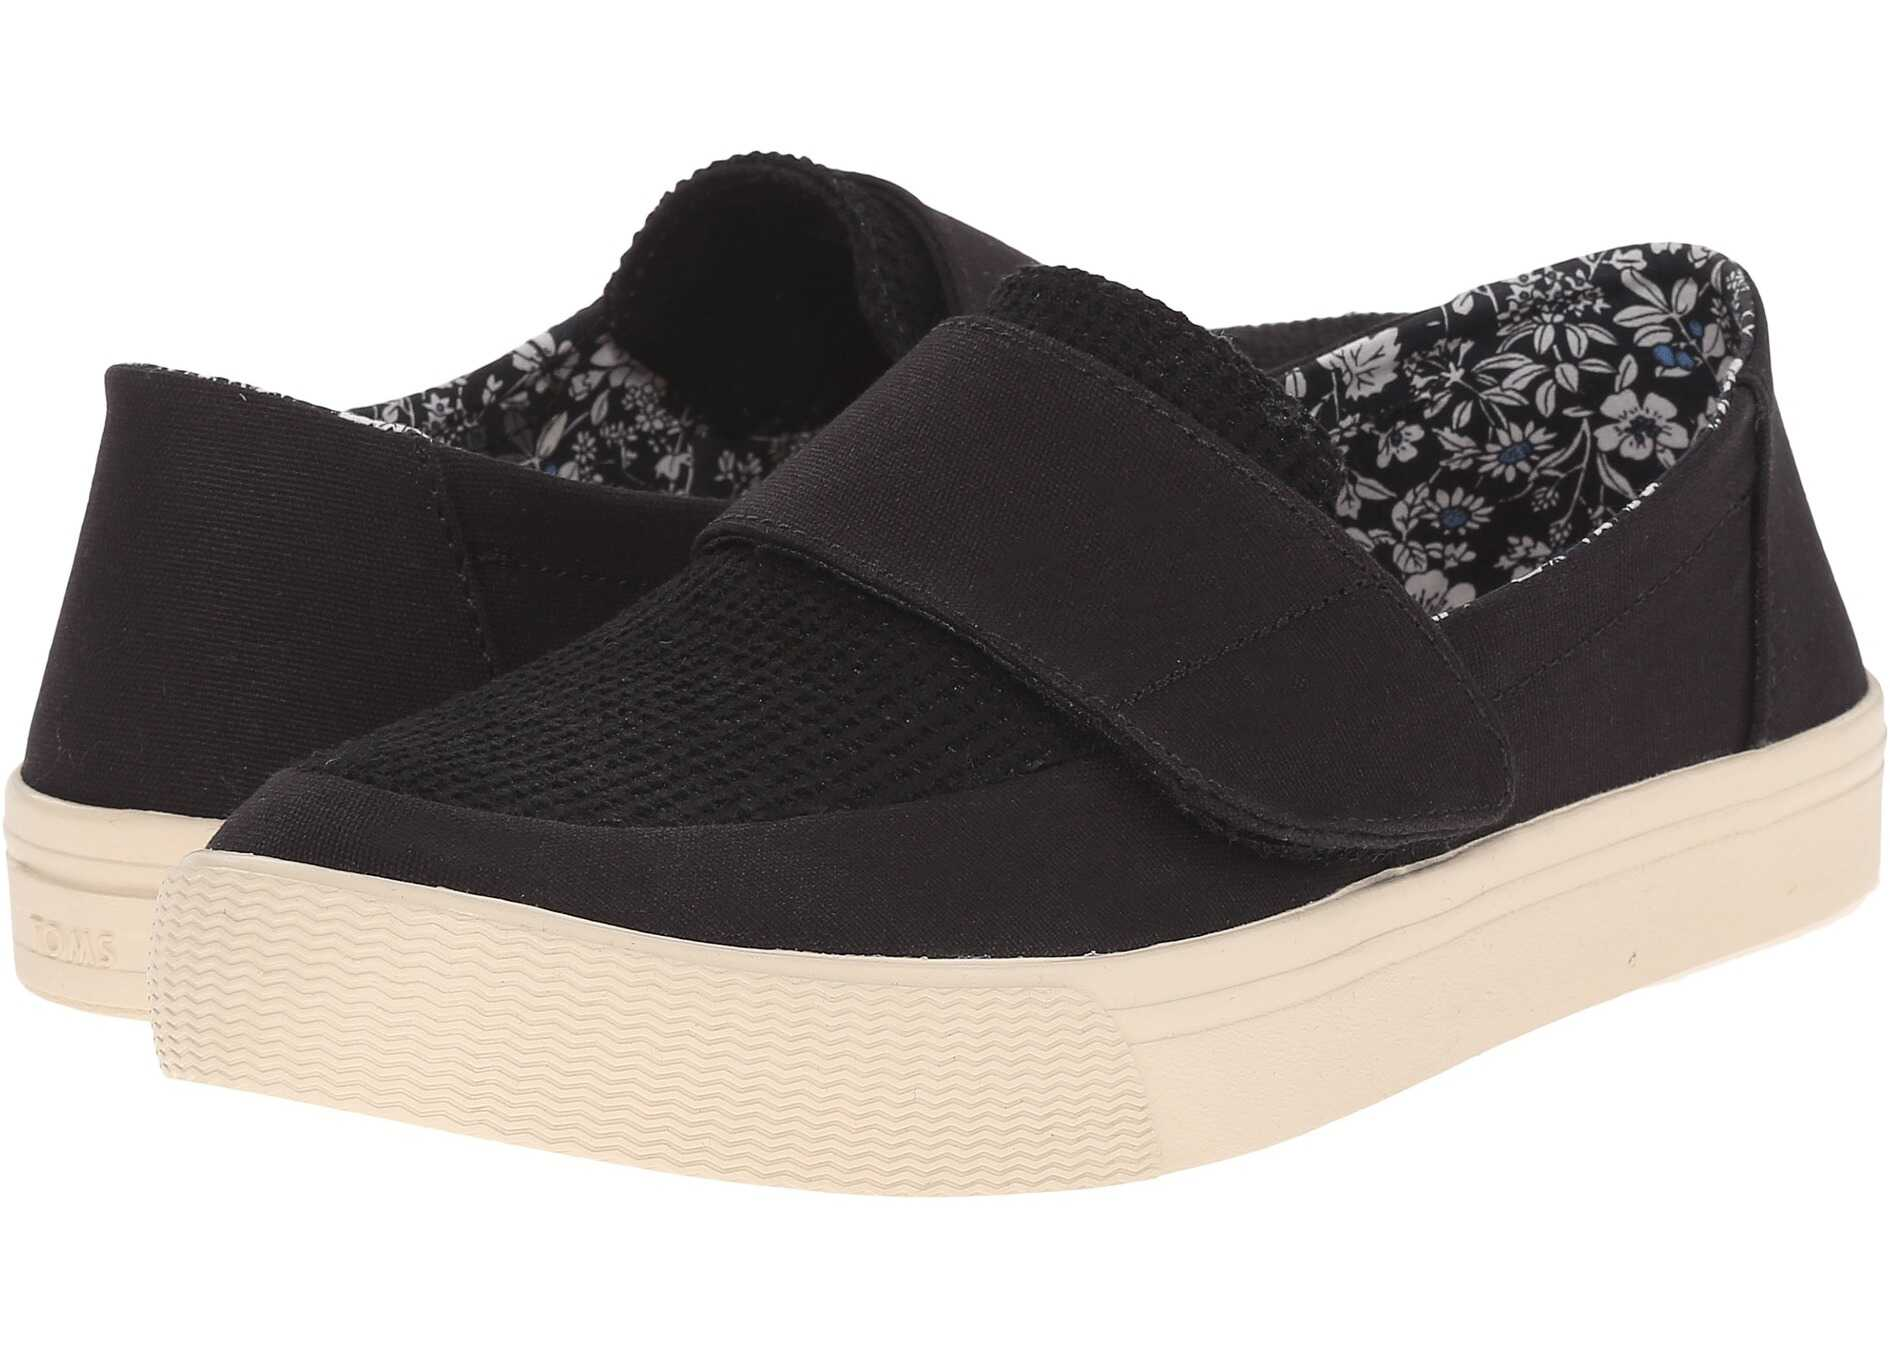 TOMS Altair Slip-On Black Canvas